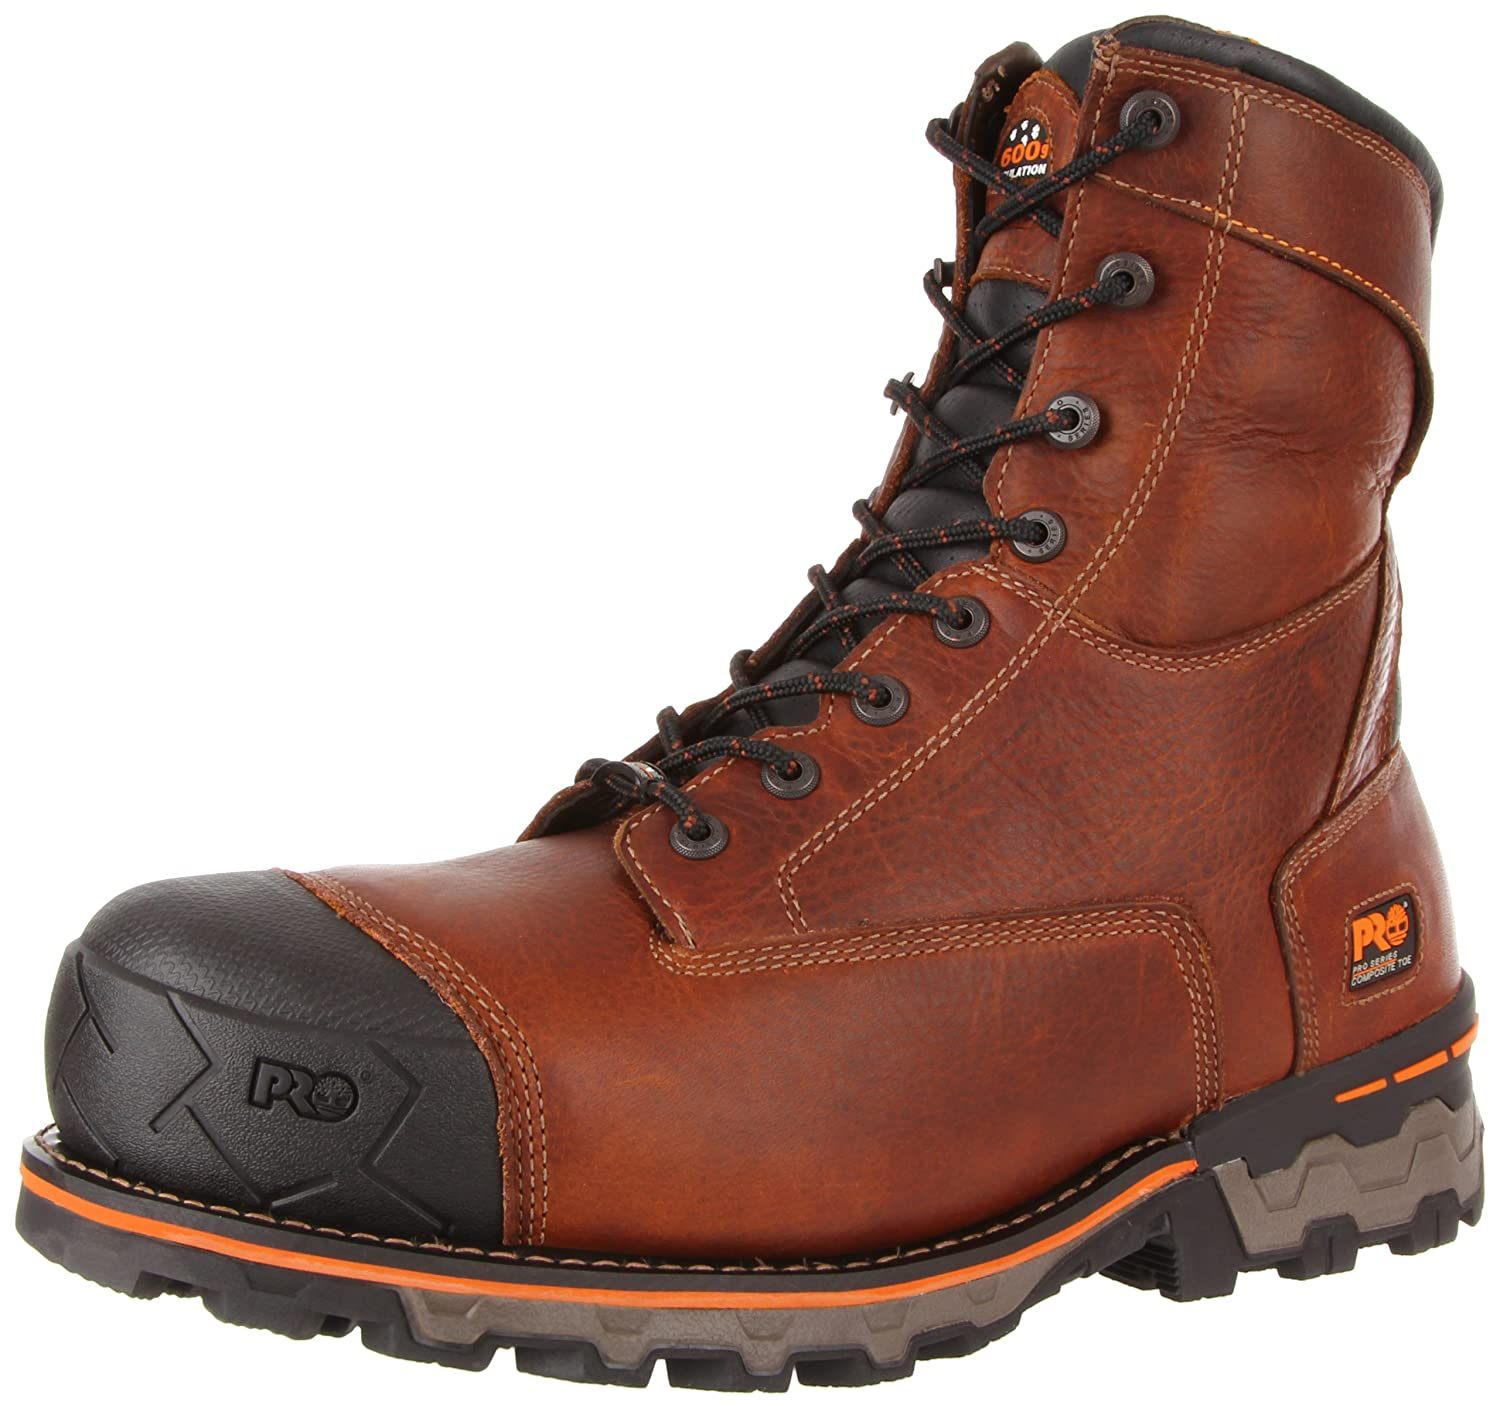 Amazoncom Timberland Pro Mens Boondock Waterproof St Work Boot Shoes